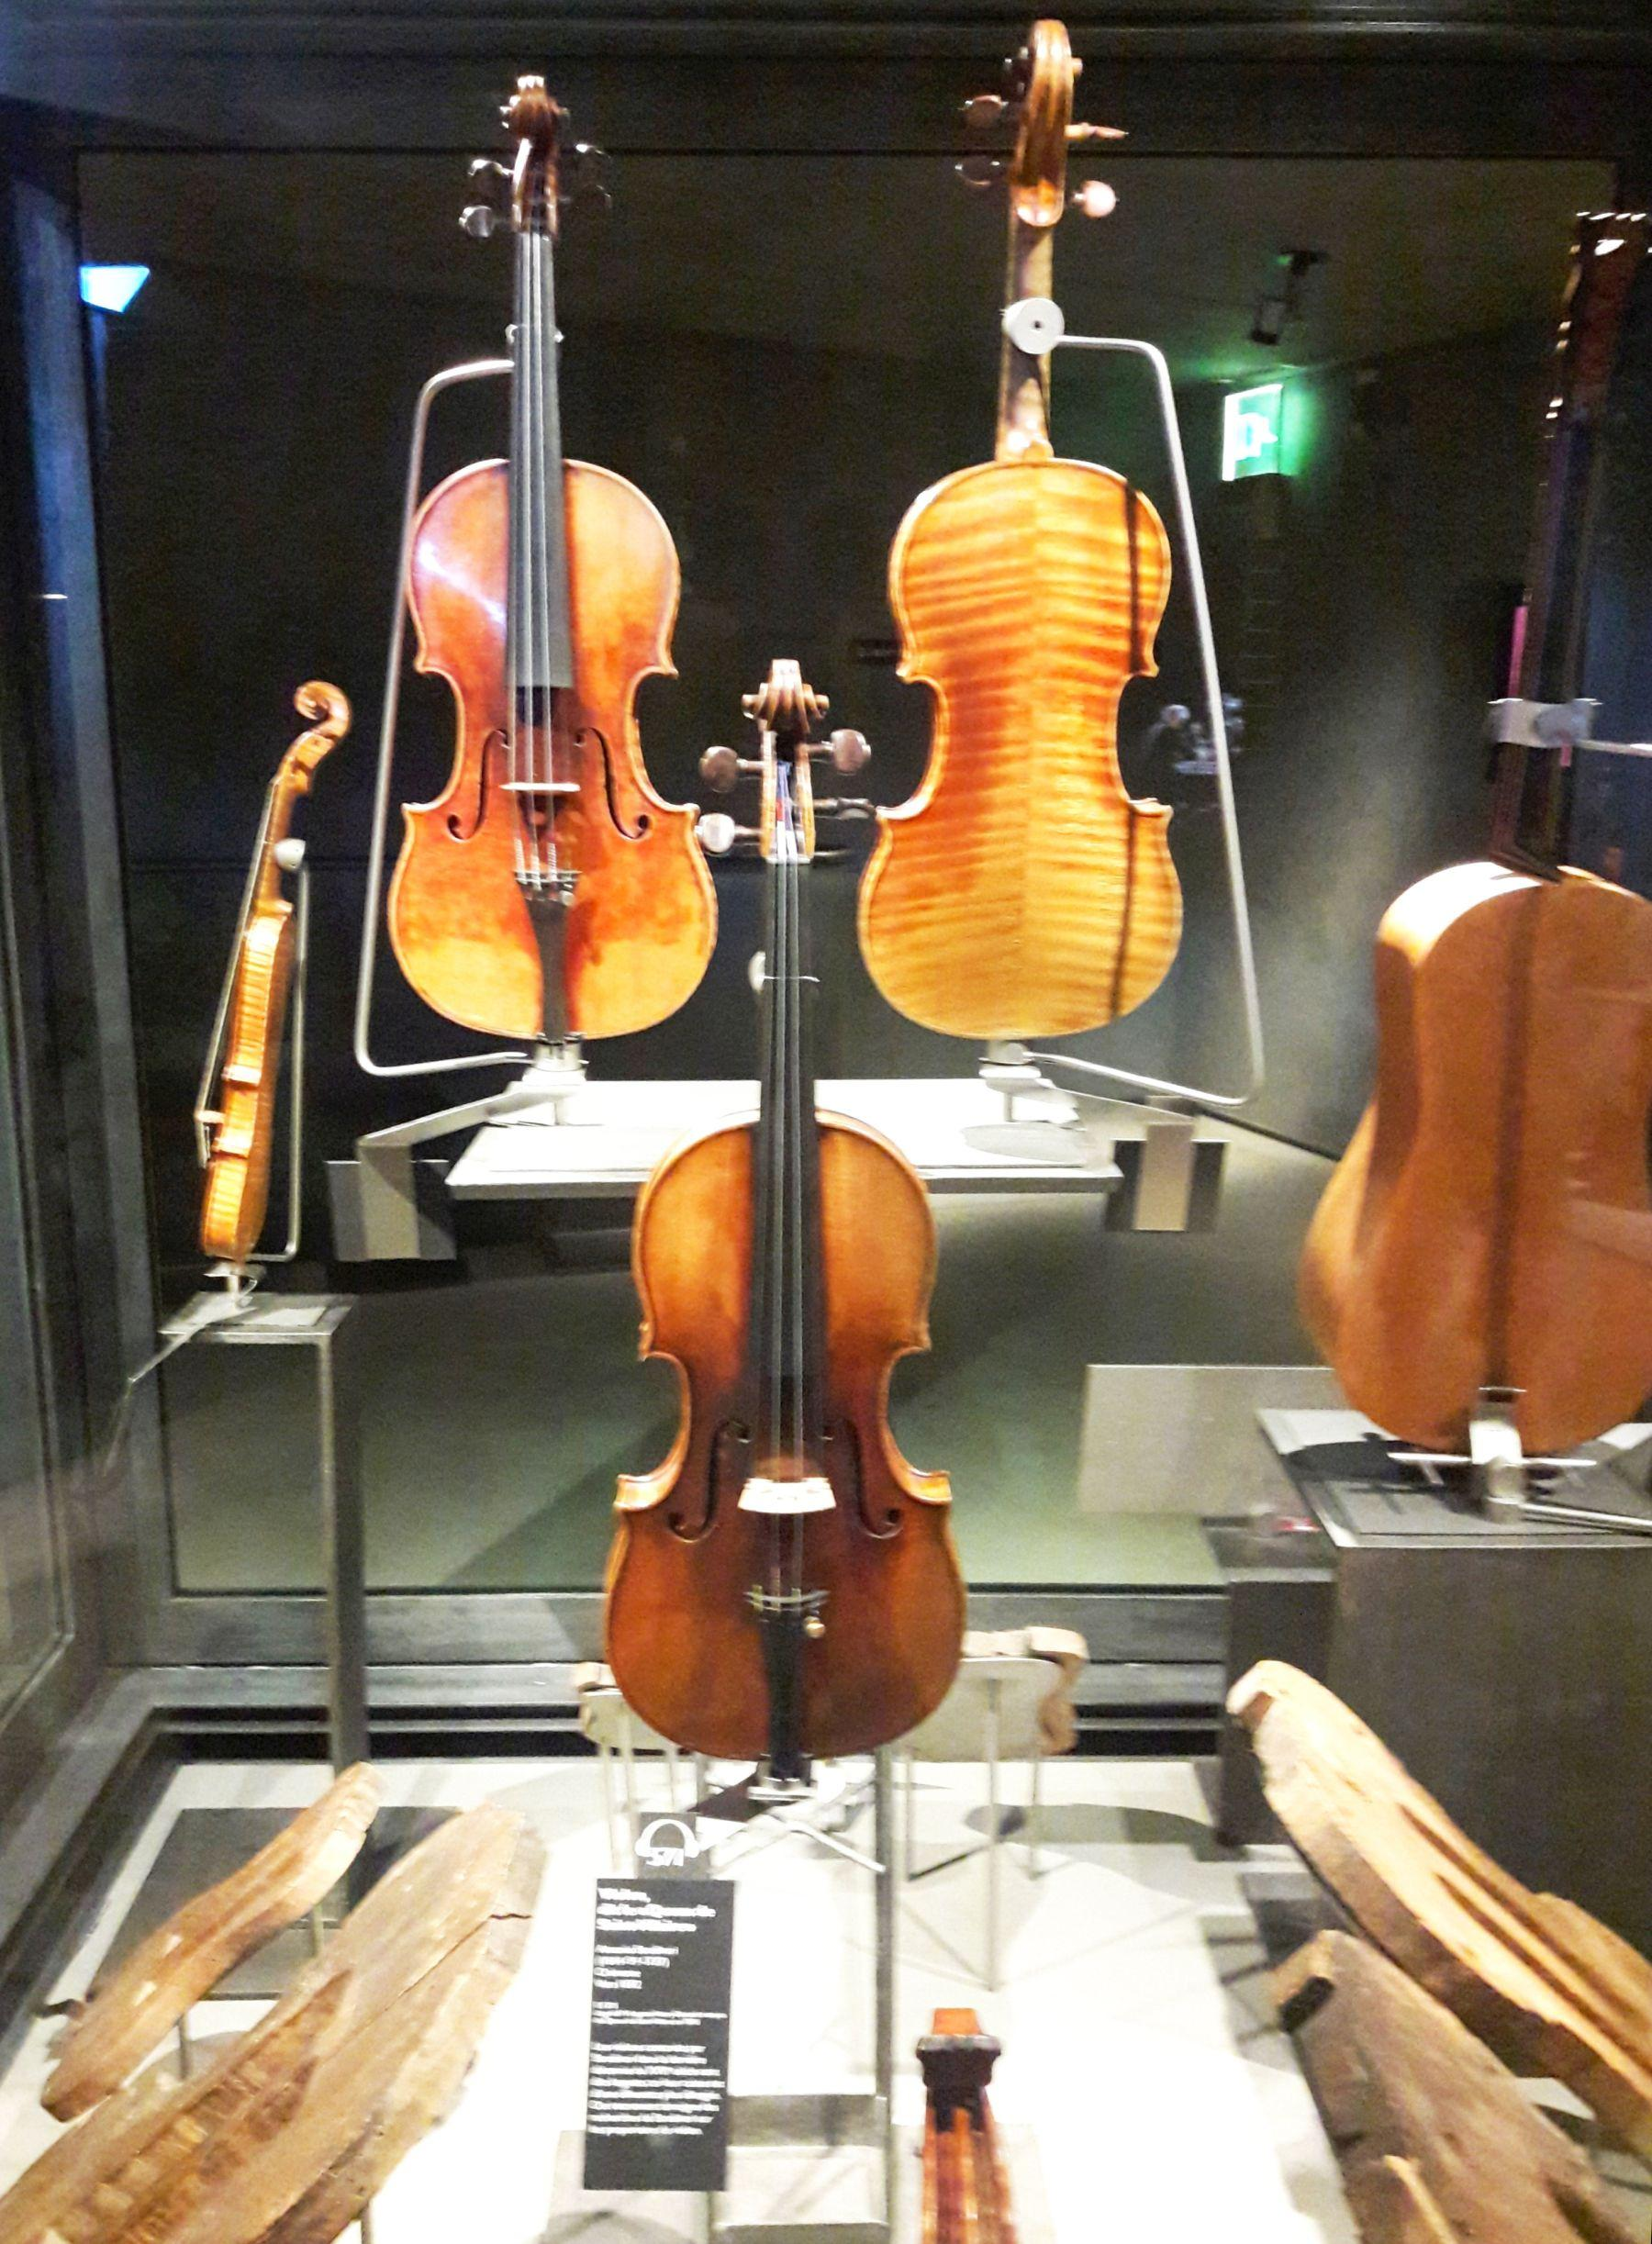 The 5 Most Expensive Violins in the World - violins and forms from Stradivari's workshop